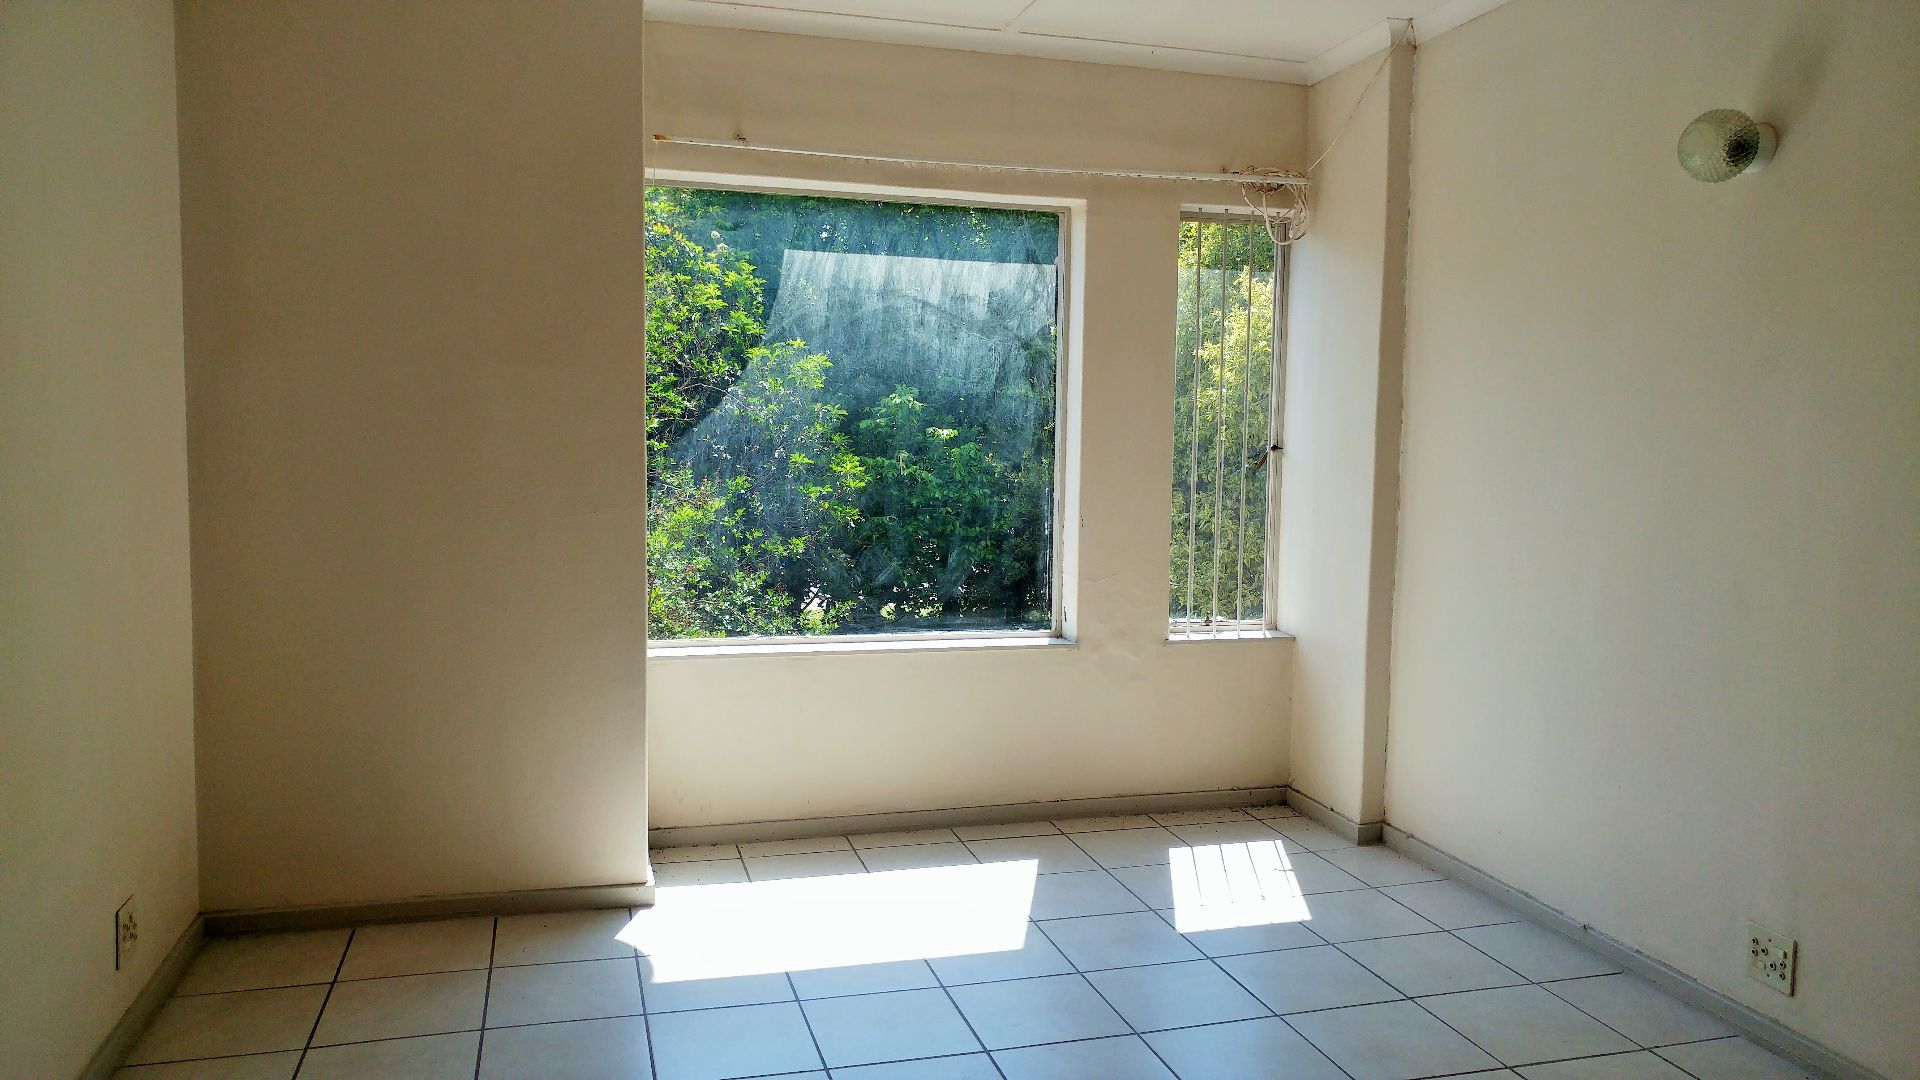 Potchefstroom Central property for sale. Ref No: 13547446. Picture no 19